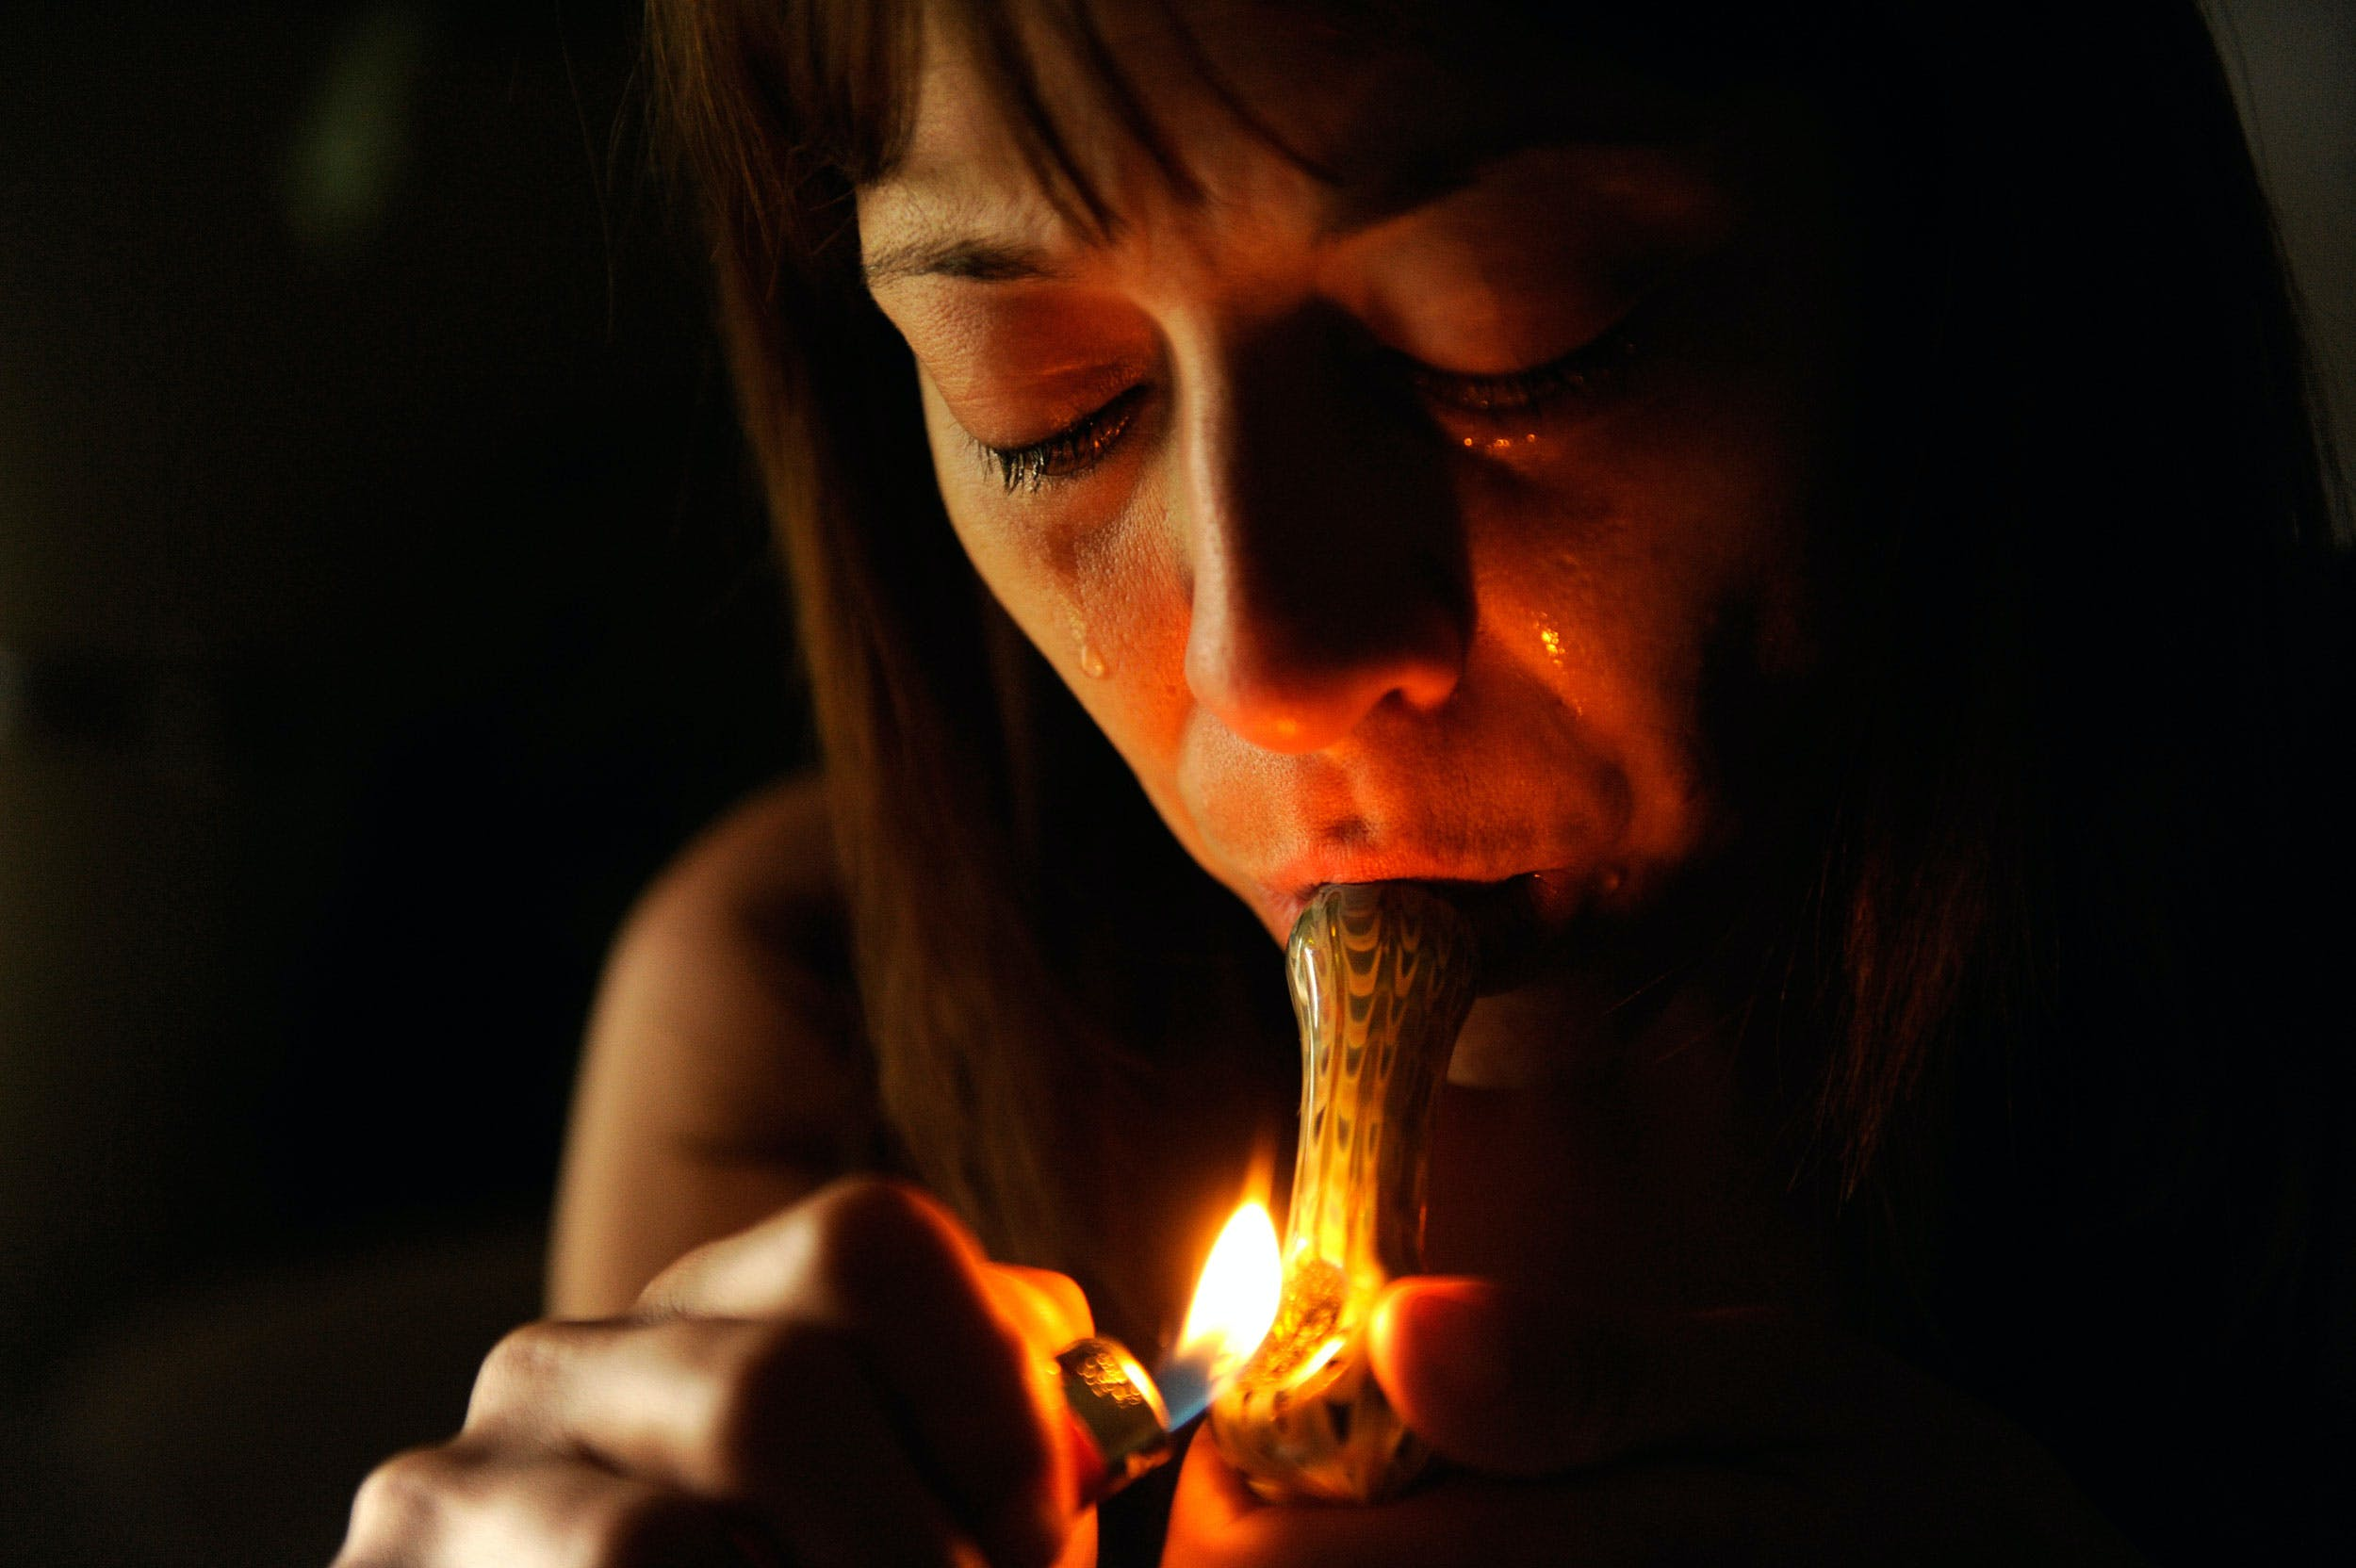 The 5 Most Common Ways Weed Improves Quality of Life3 Caribbean Nations Are Seriously Thinking About Cannabis Decriminalization